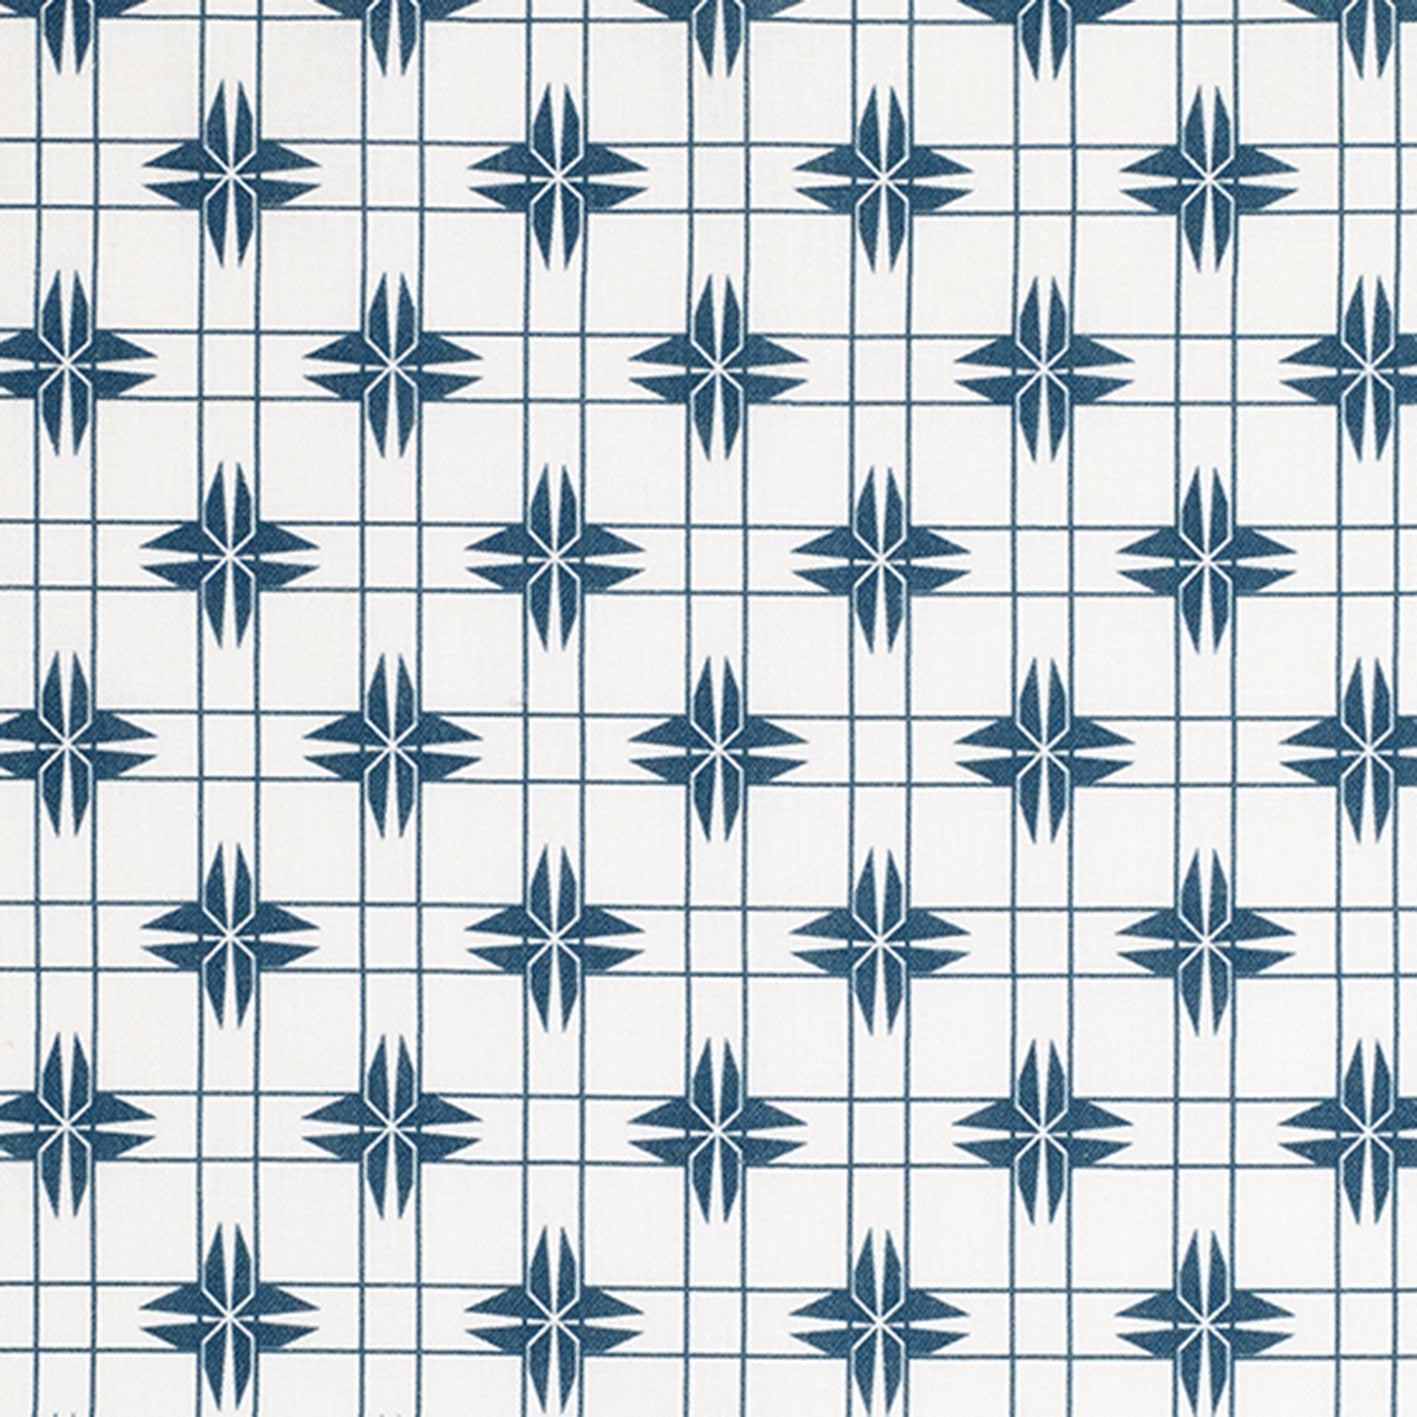 Pueblo Geometric Pattern Cotton Linen & Canvas Fabric by the Yard in Dark Petrol Blue